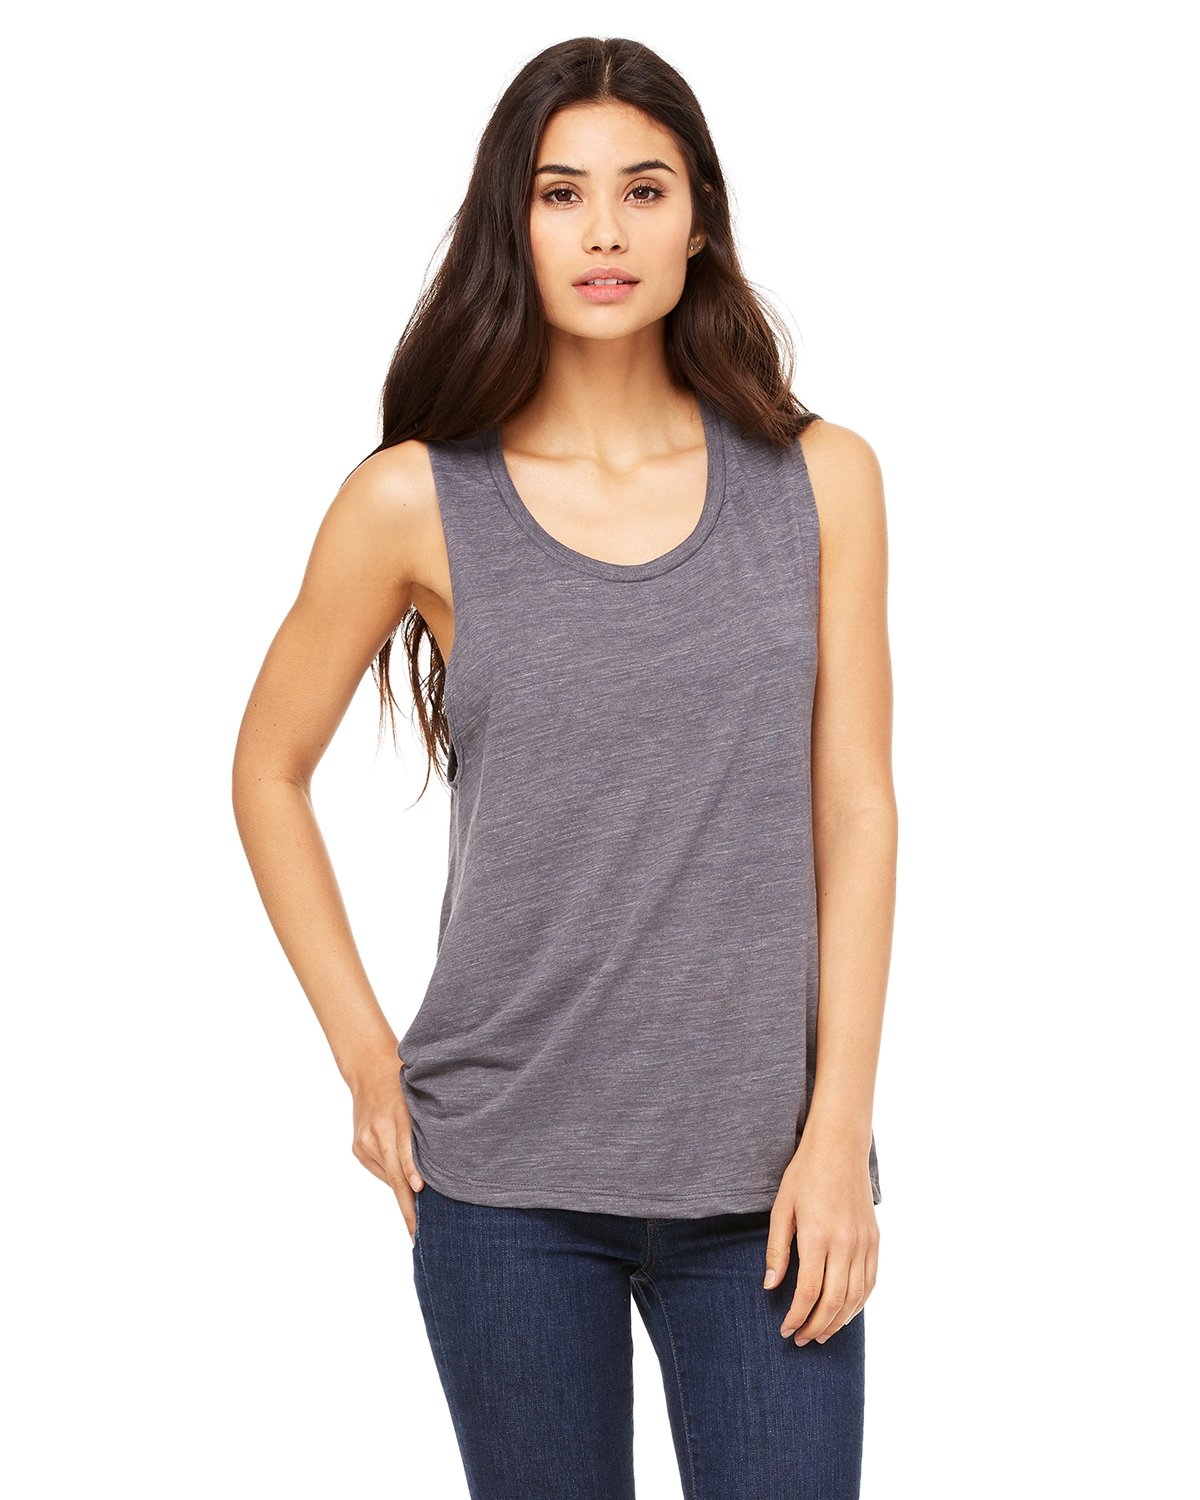 Bella + Canvas - B8803 - Ladies' Flowy Scoop Muscle Tank